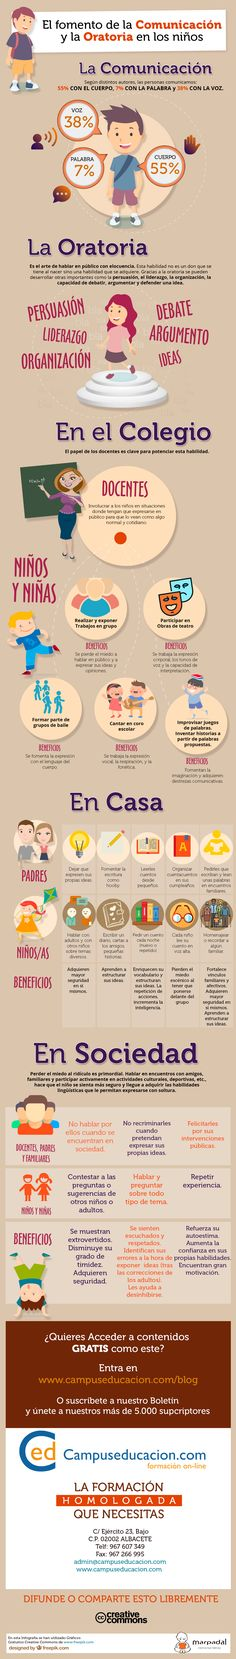 El fomento de la Comunicación y la Oratoria en los niños Spanish Lesson Plans, Spanish Lessons, Journal Topics, Good Student, Positive Psychology, Spanish Class, Too Cool For School, Dyslexia, Best Teacher